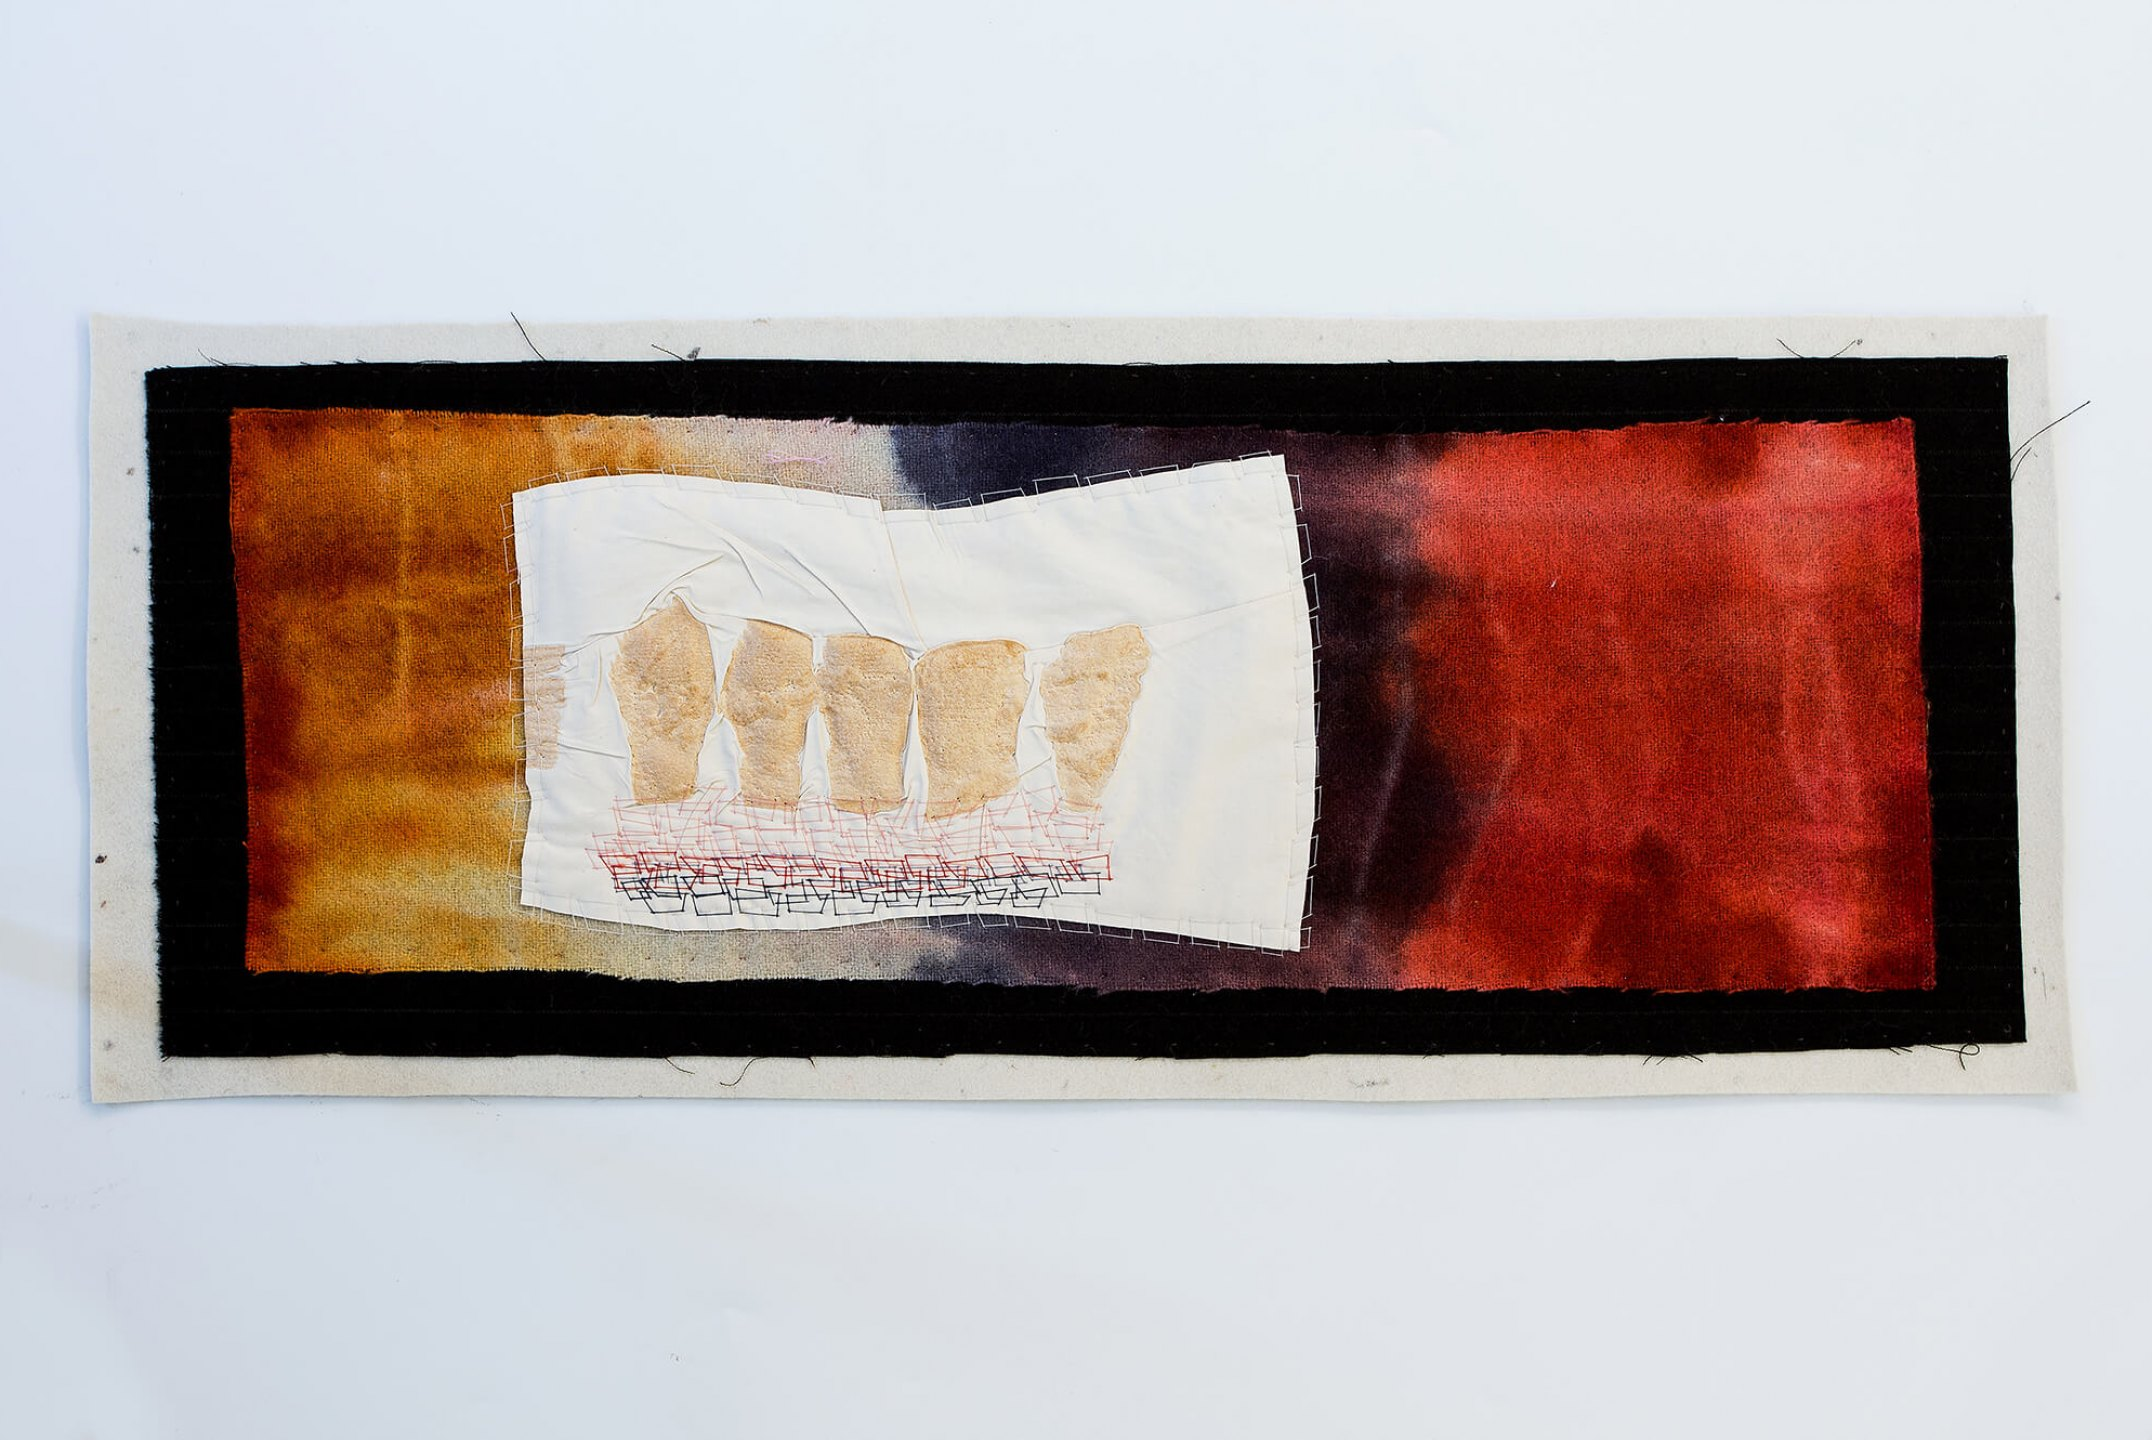 f.marquespeteado, <em>Vozes 01,</em> 2011, print on cotton hand-embroidered on industrial felt, 38 × 79 cm - Mendes Wood DM